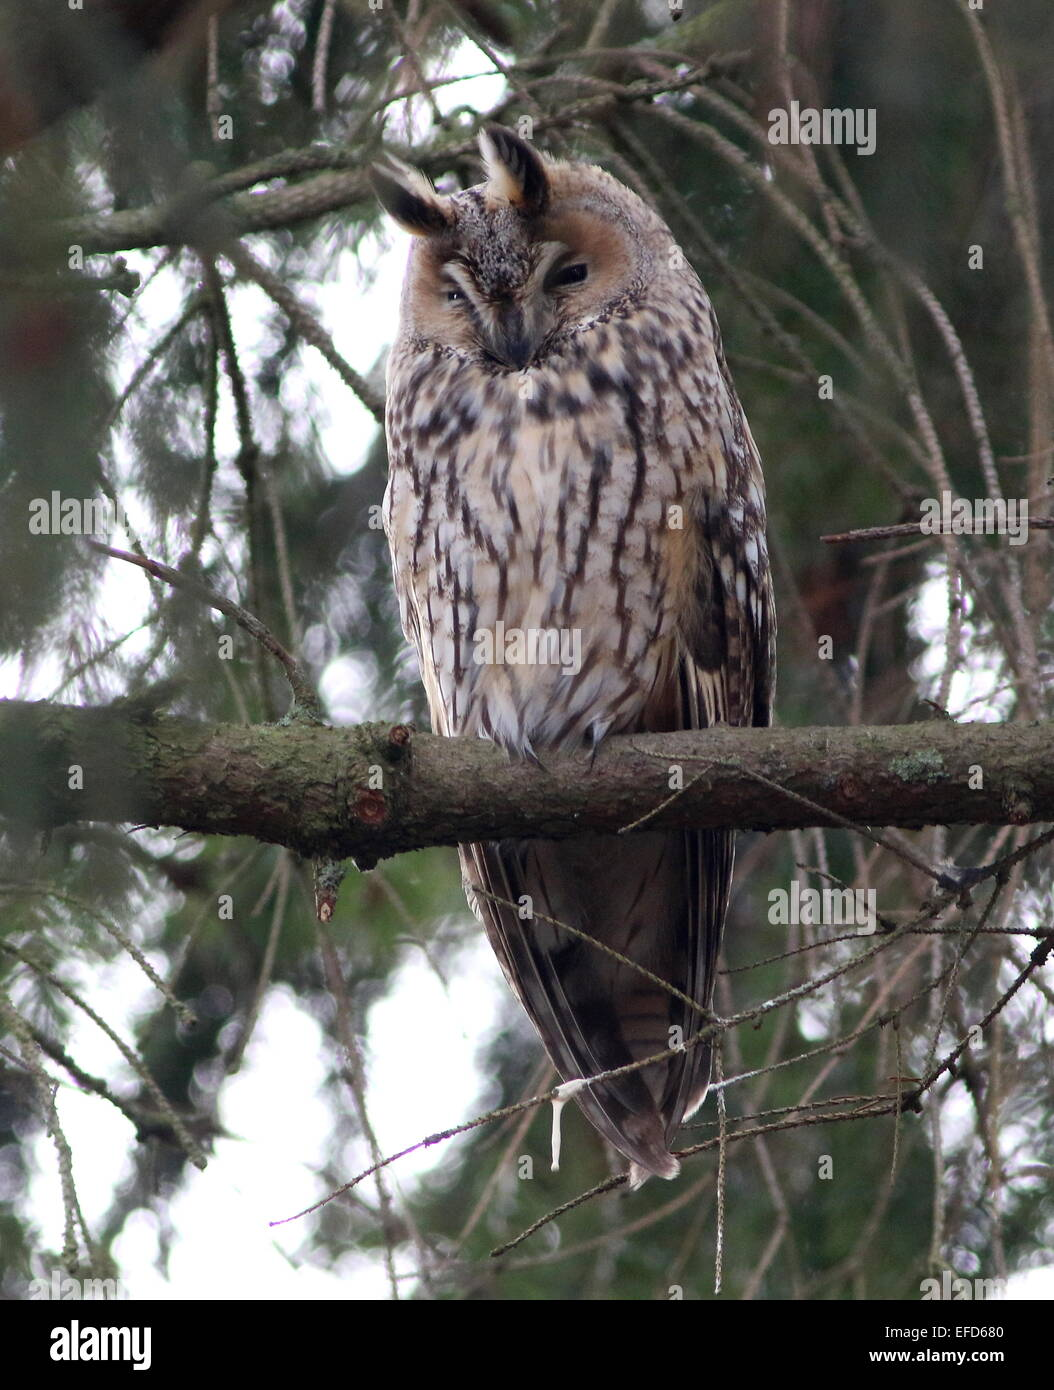 Long-eared Owl (Asio otus) in a pine tree during daytime, dozing and resting. - Stock Image